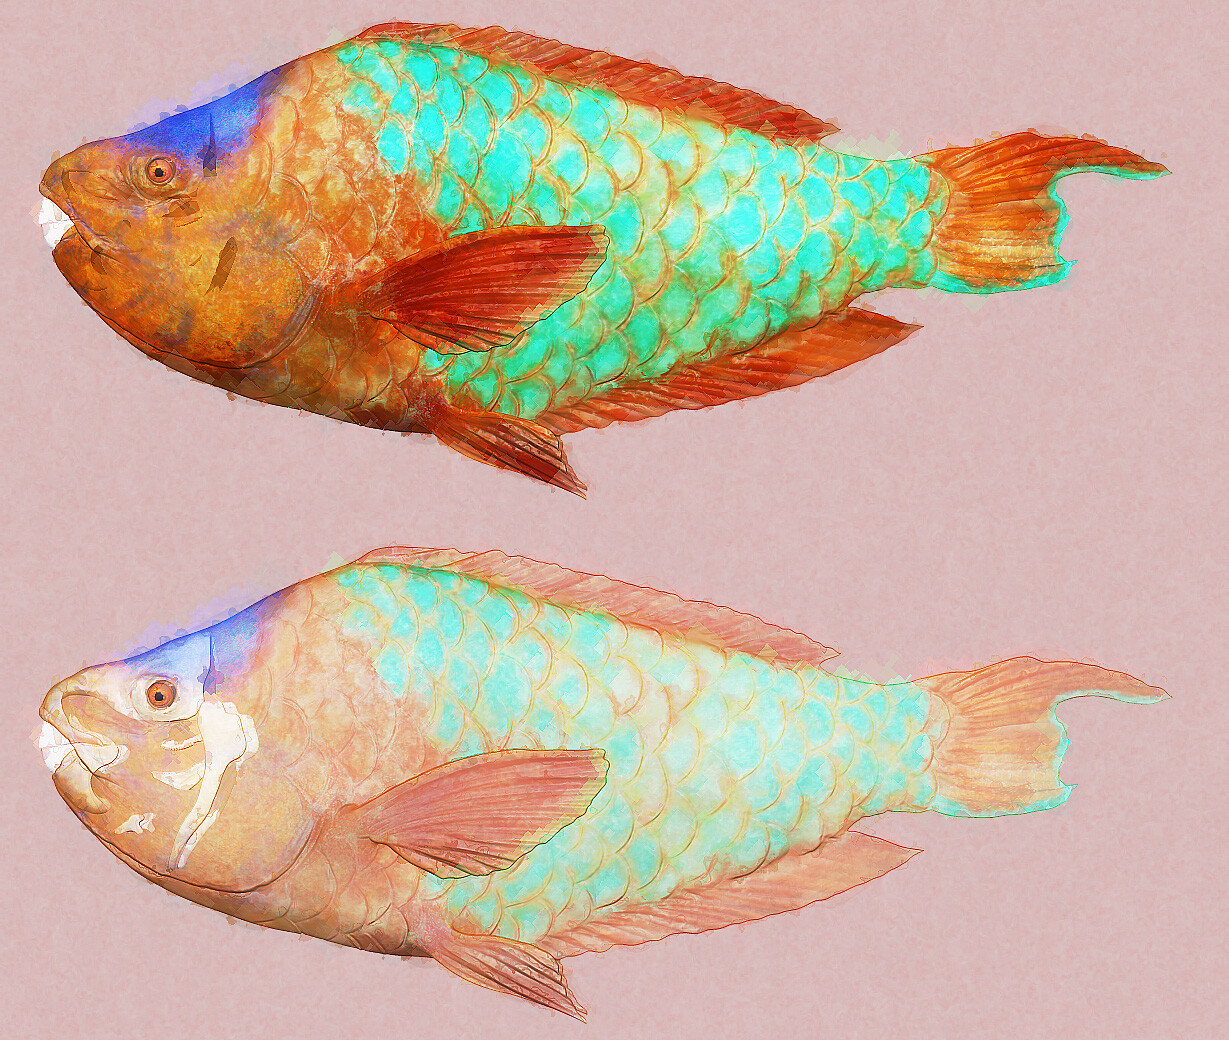 Rainbow Parrot fish. The skeletal structure is visible through the semi transparent body on the lower image.